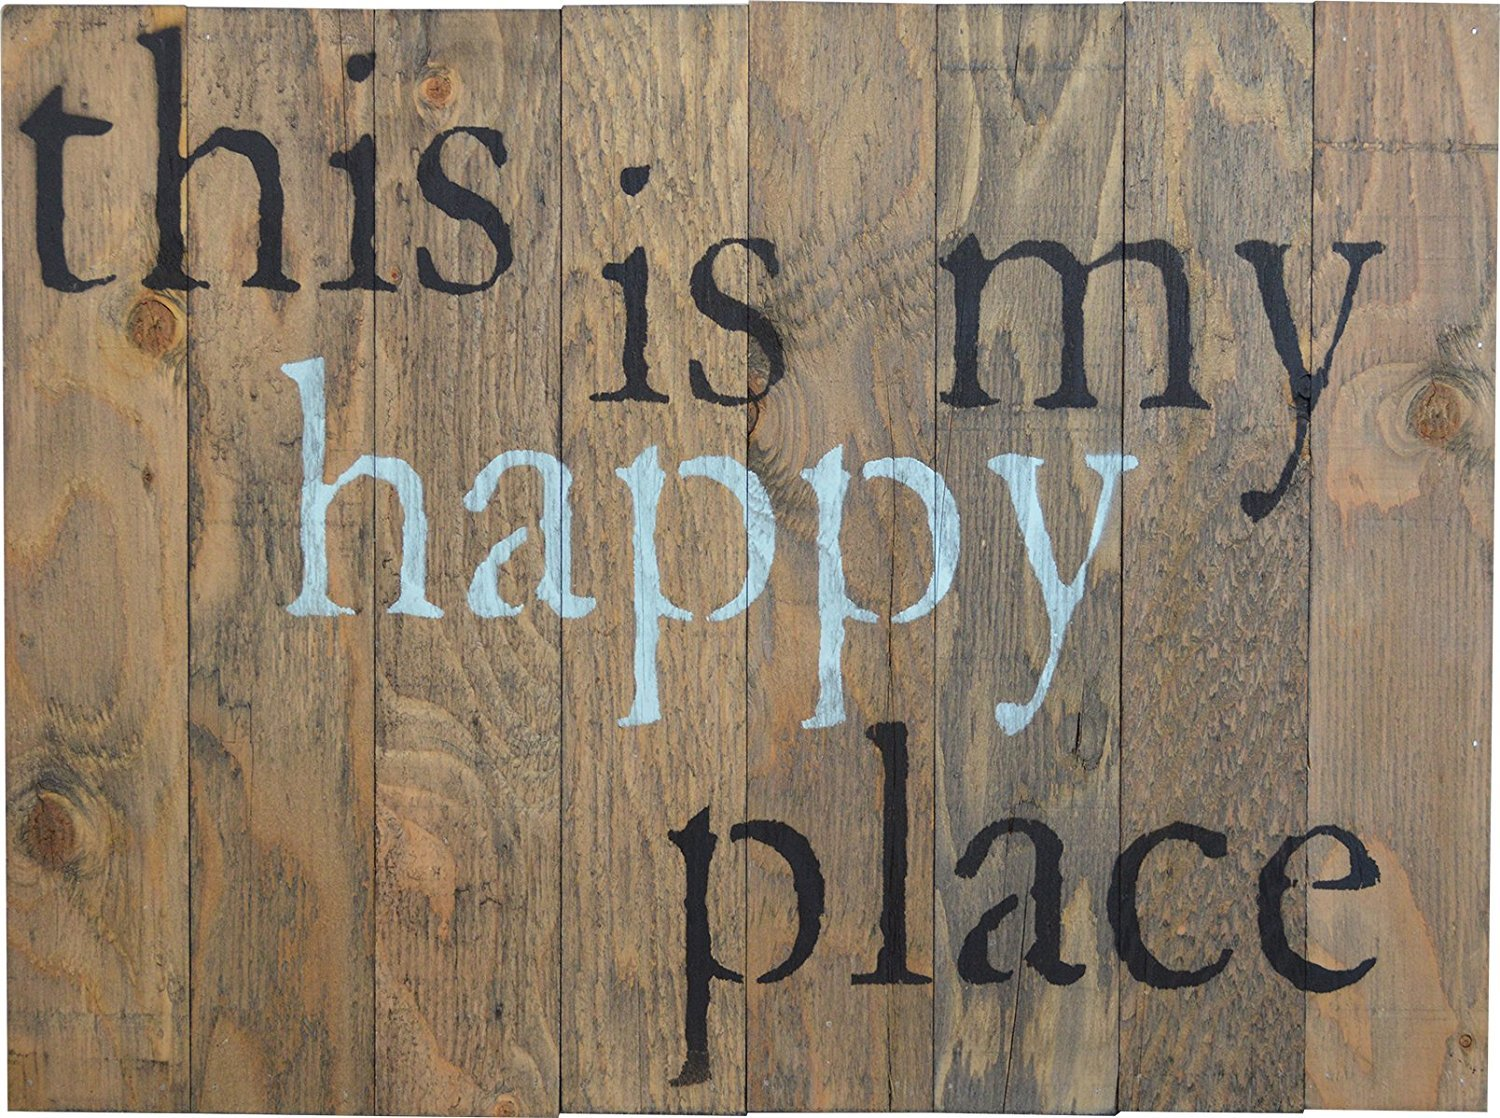 THIS IS MY HAPPY PLACE Rustic Barn Wood Pallet Sign 18''x24'' Handcrafted fun wall decor with floral design and quote to beautify your family home and make you smile every day